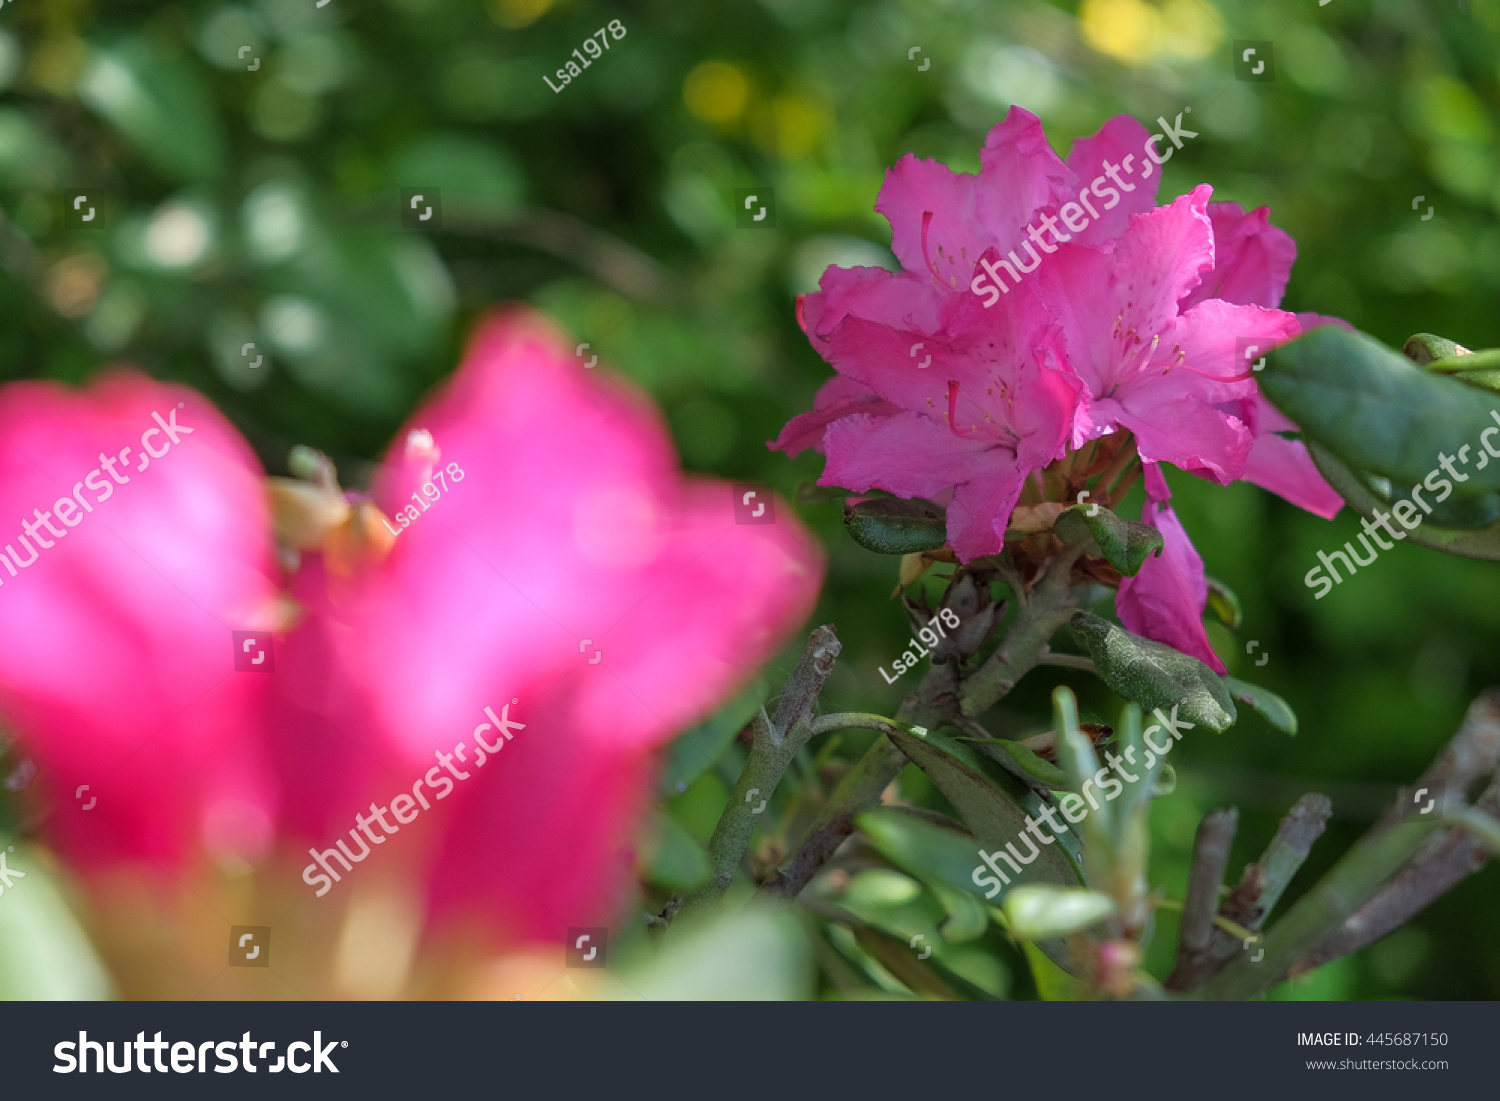 Pink Blooming Garden Flowers Blurry On Stock Photo Royalty Free